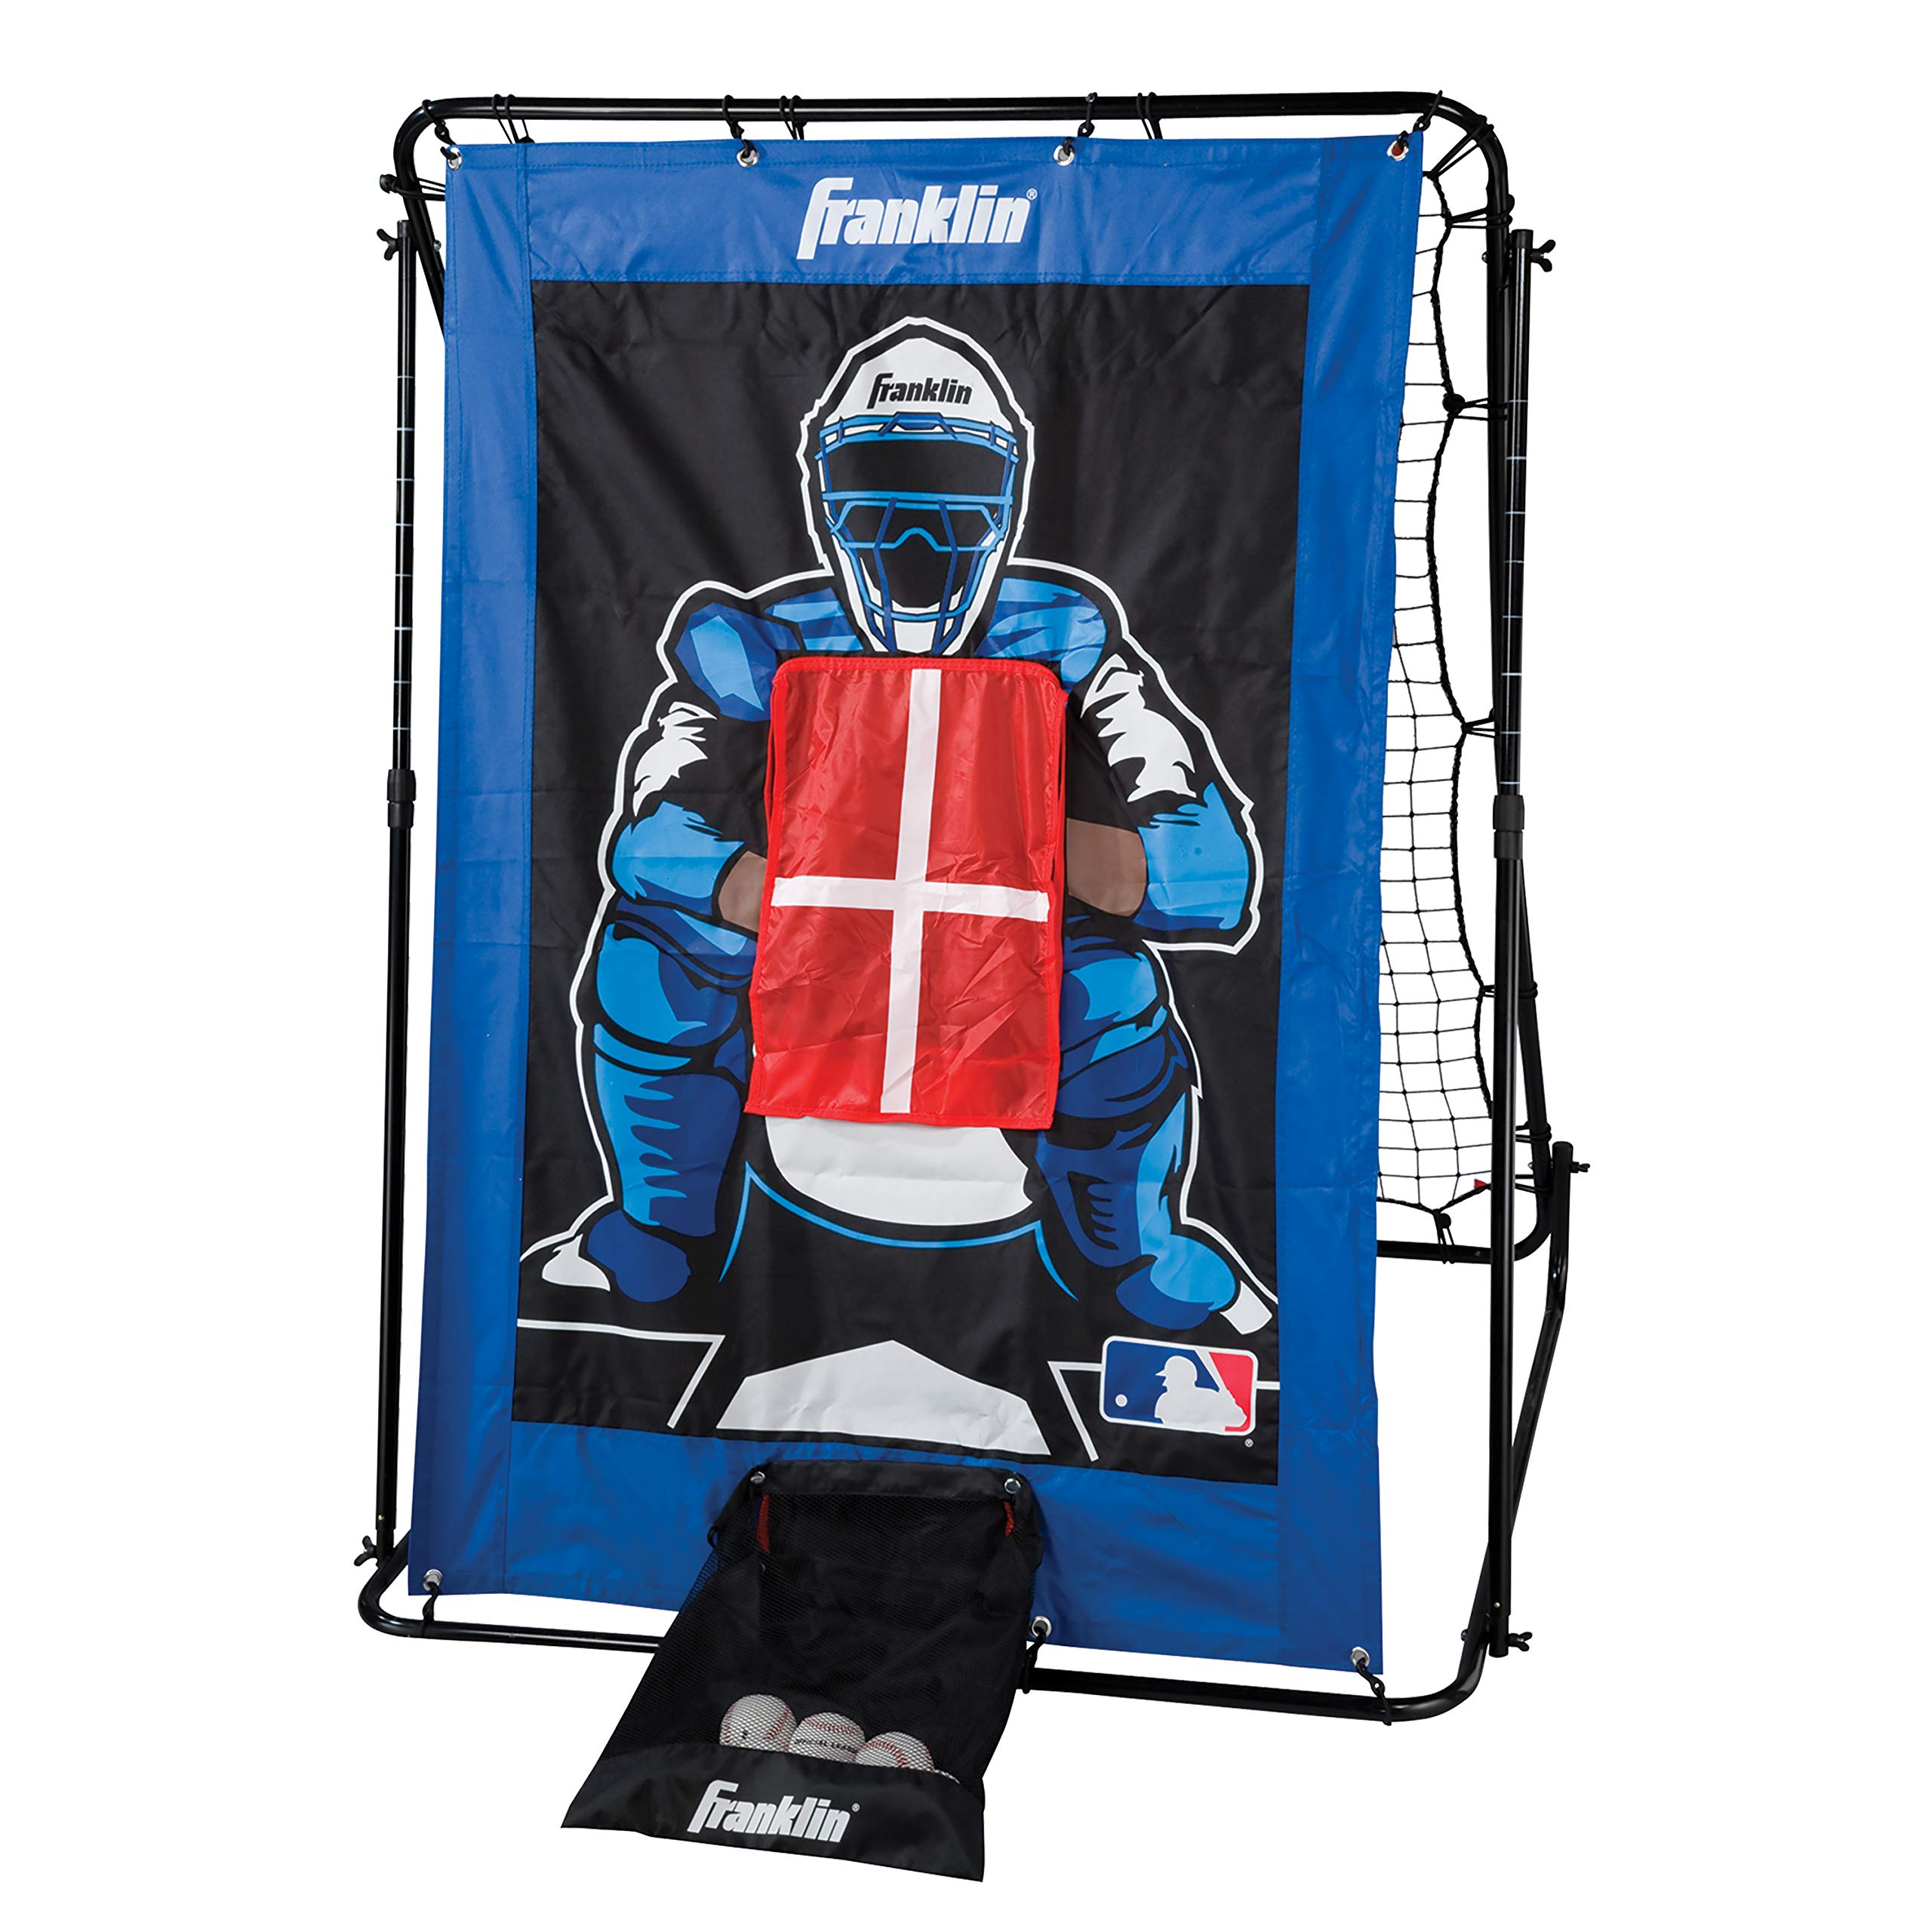 Franklin Sports Pitch Back baseball Rebounder and Pitching Target - 2 in 1 Return Trainer and Catcher Target - Great for Practices